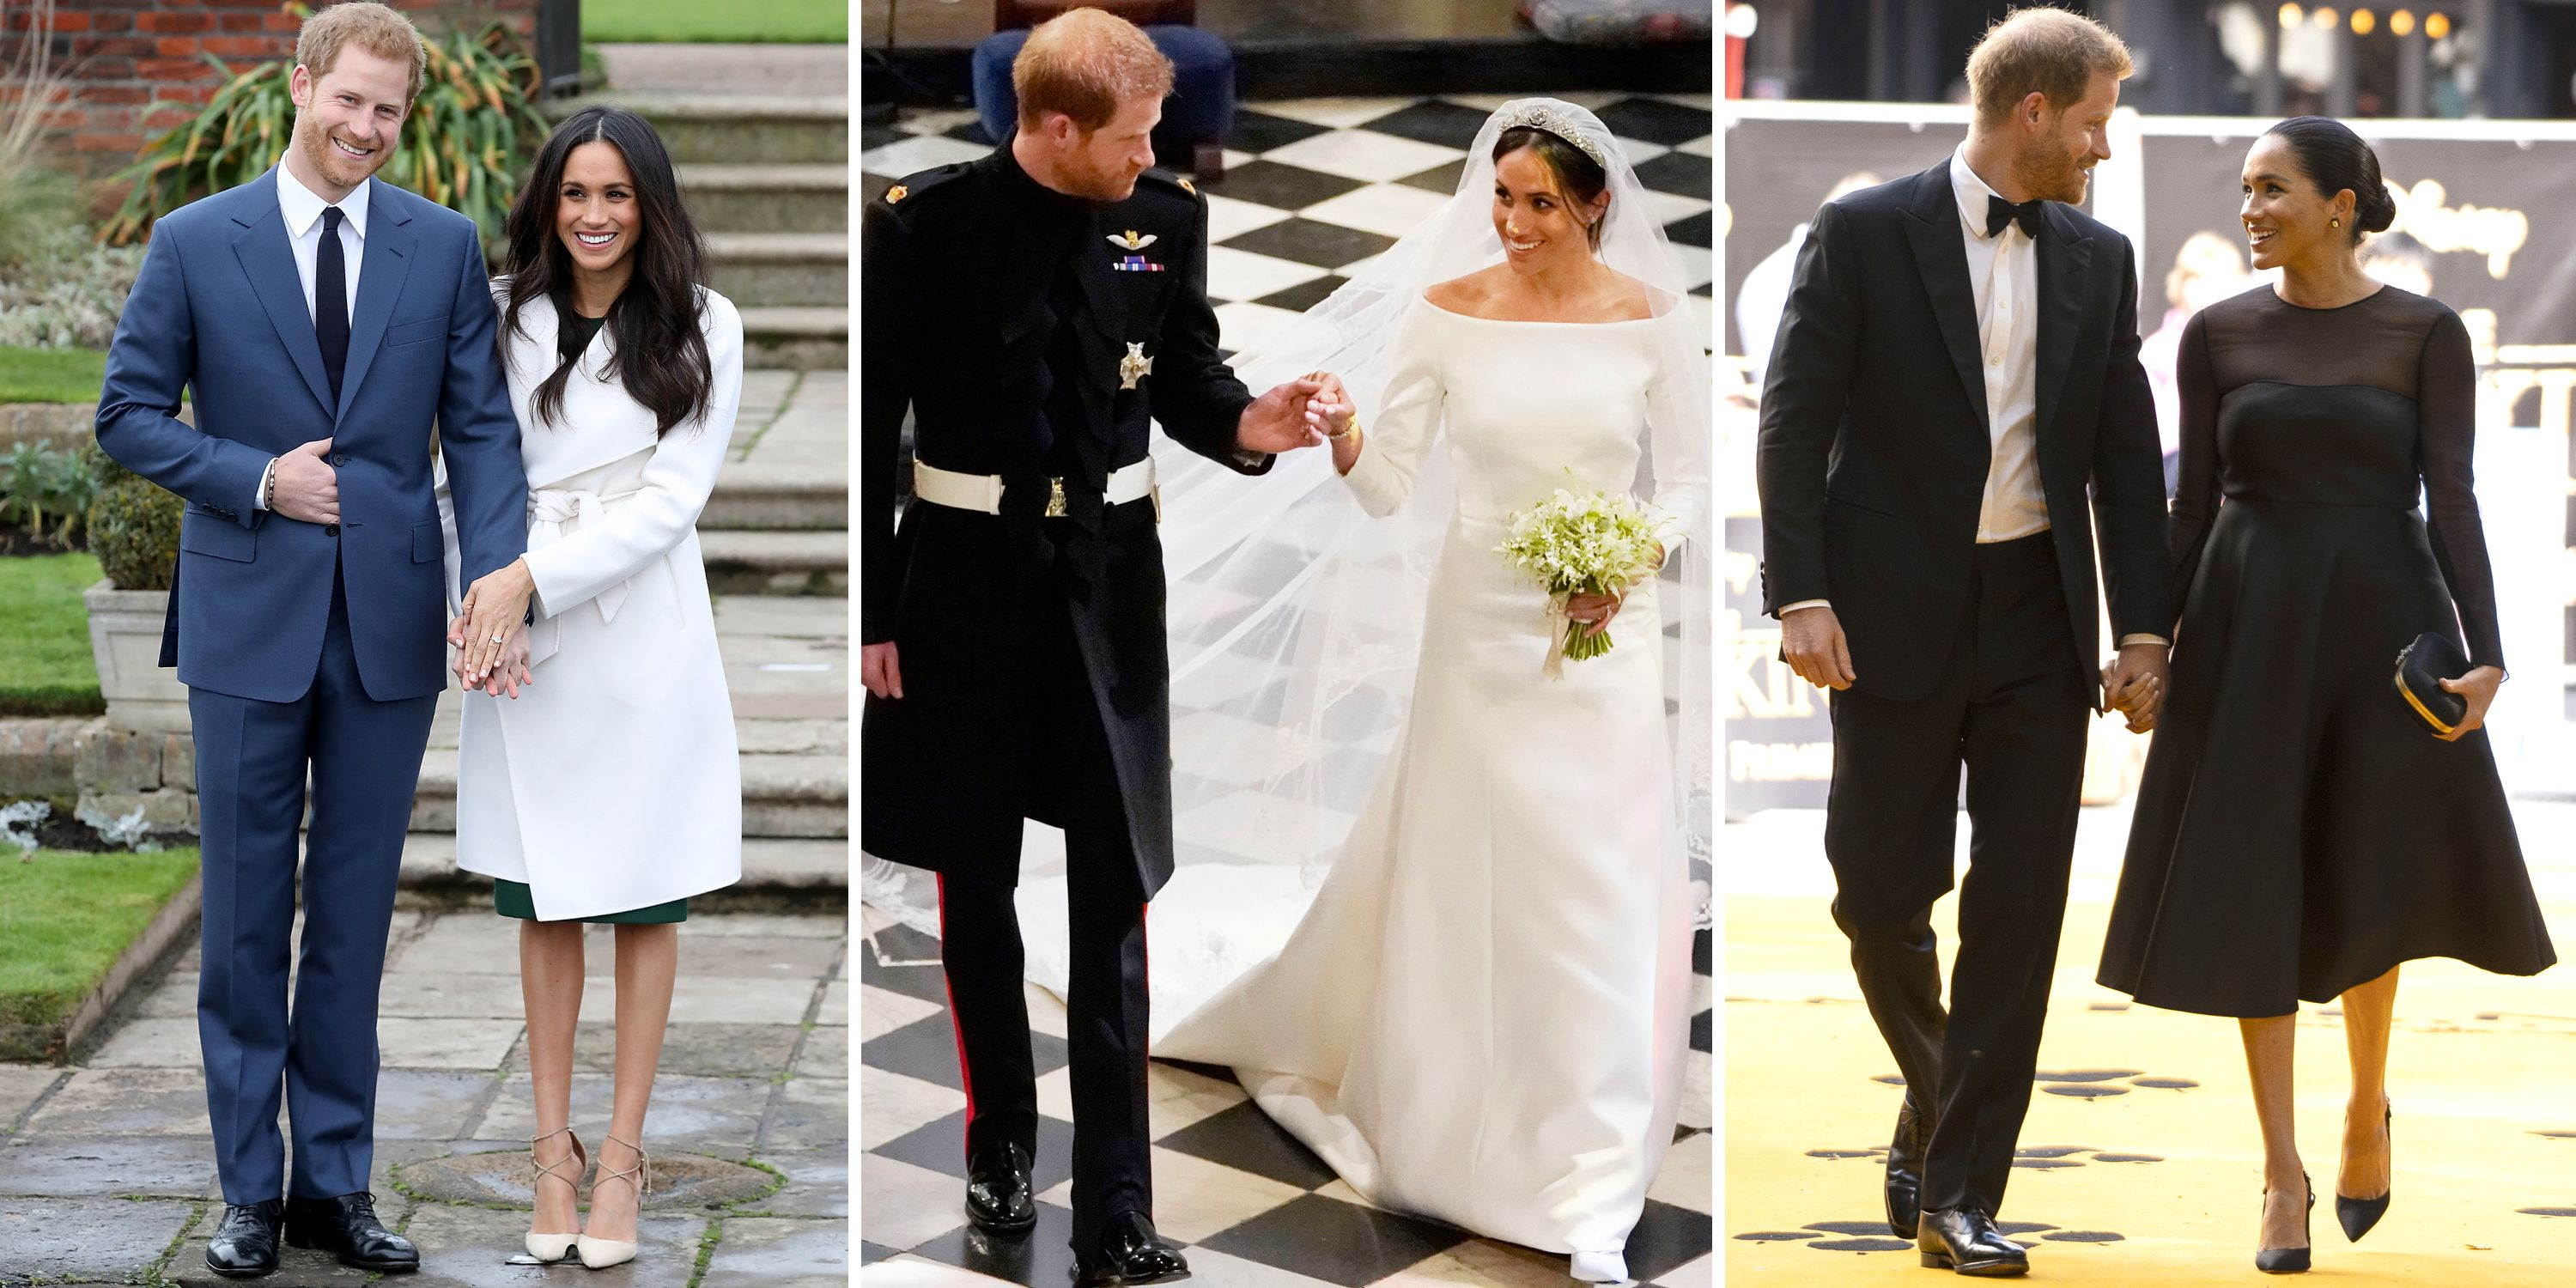 Prince Harry and Meghan Markle's Sweetest Moments in Photos